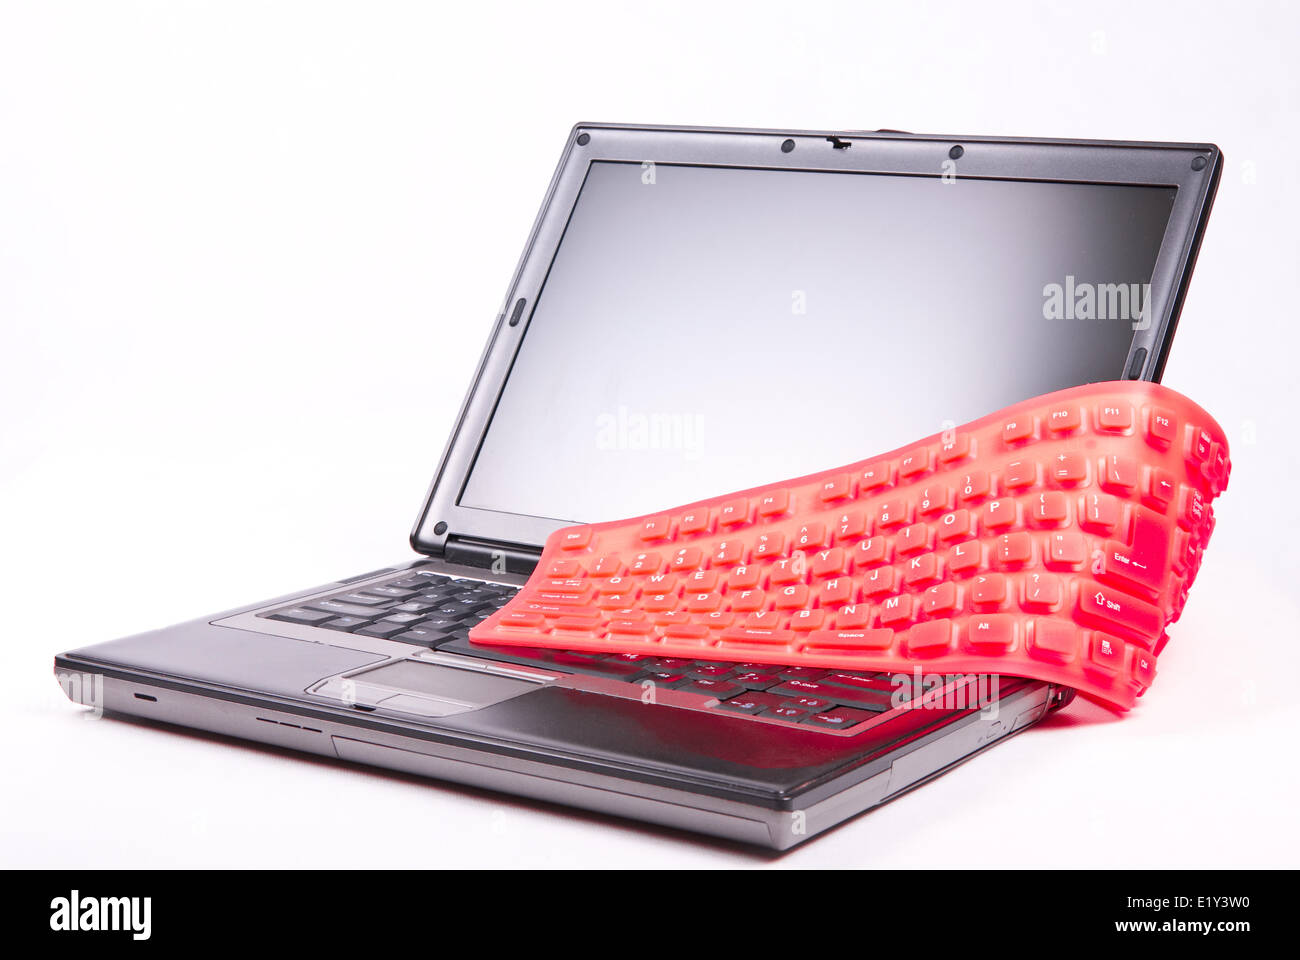 laptop and flexible magenta keyboard Stock Photo